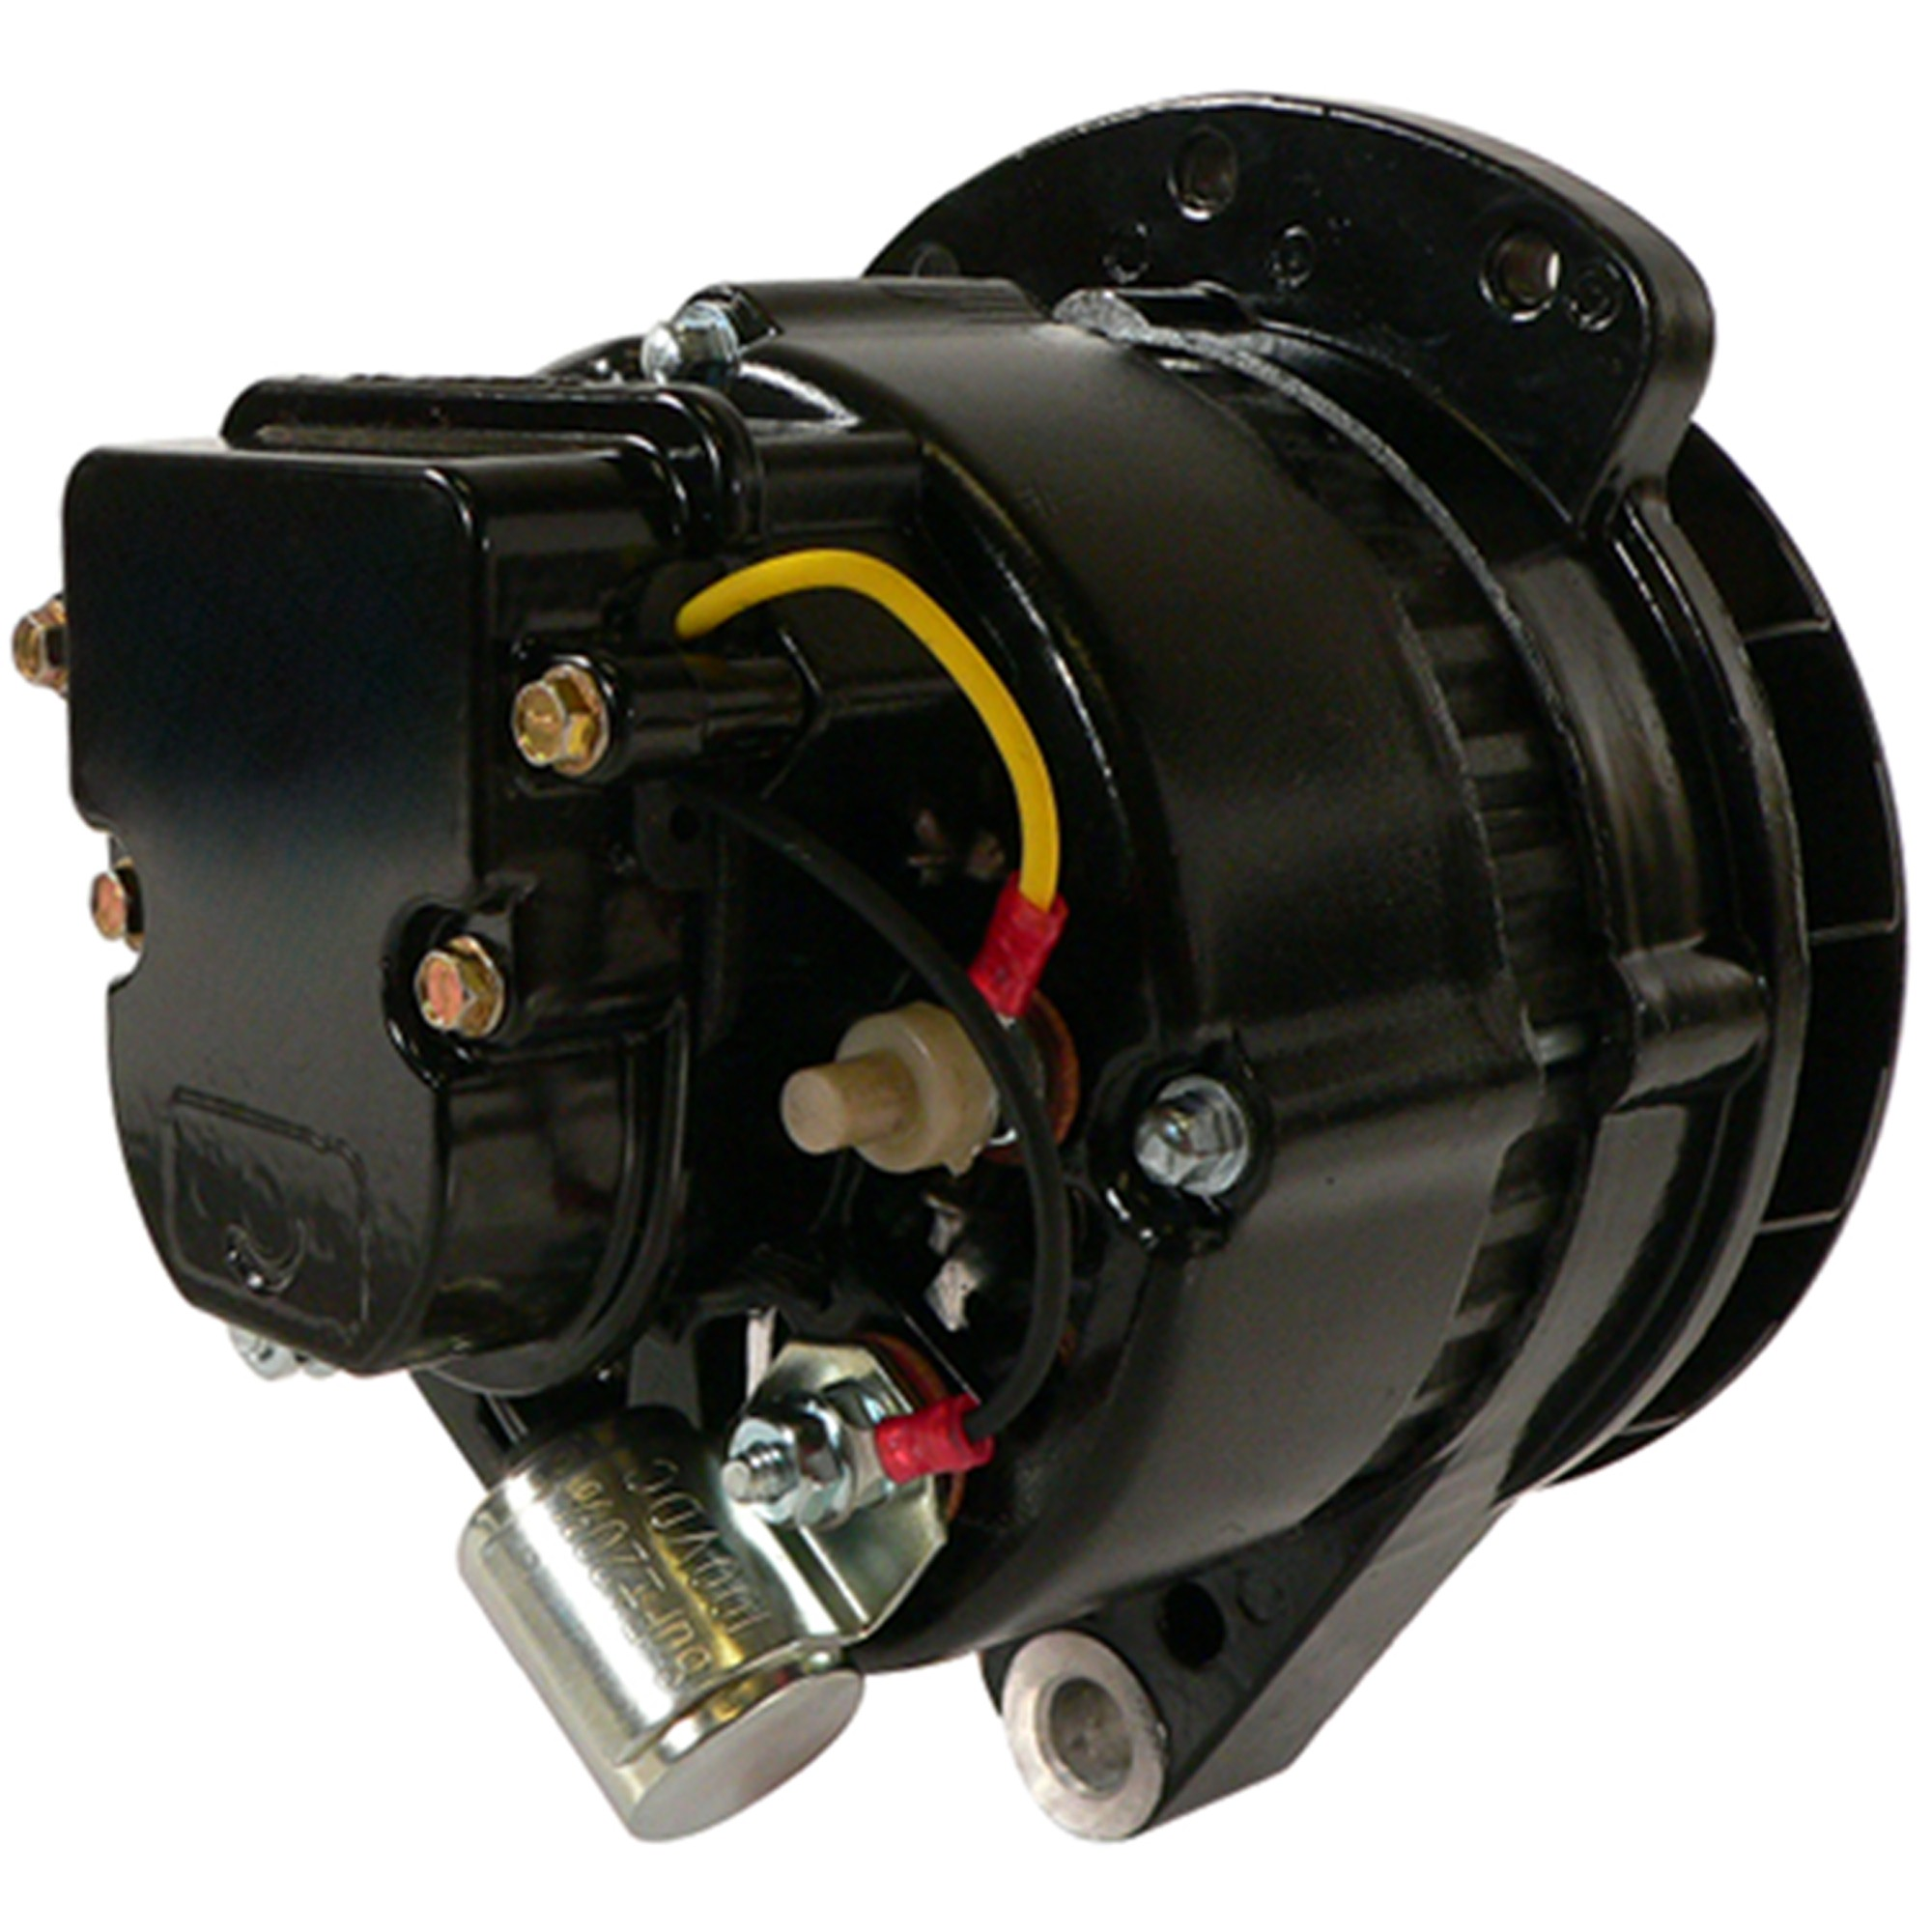 New Alternator For Caterpillar Engines 3196 3208 3406 3408